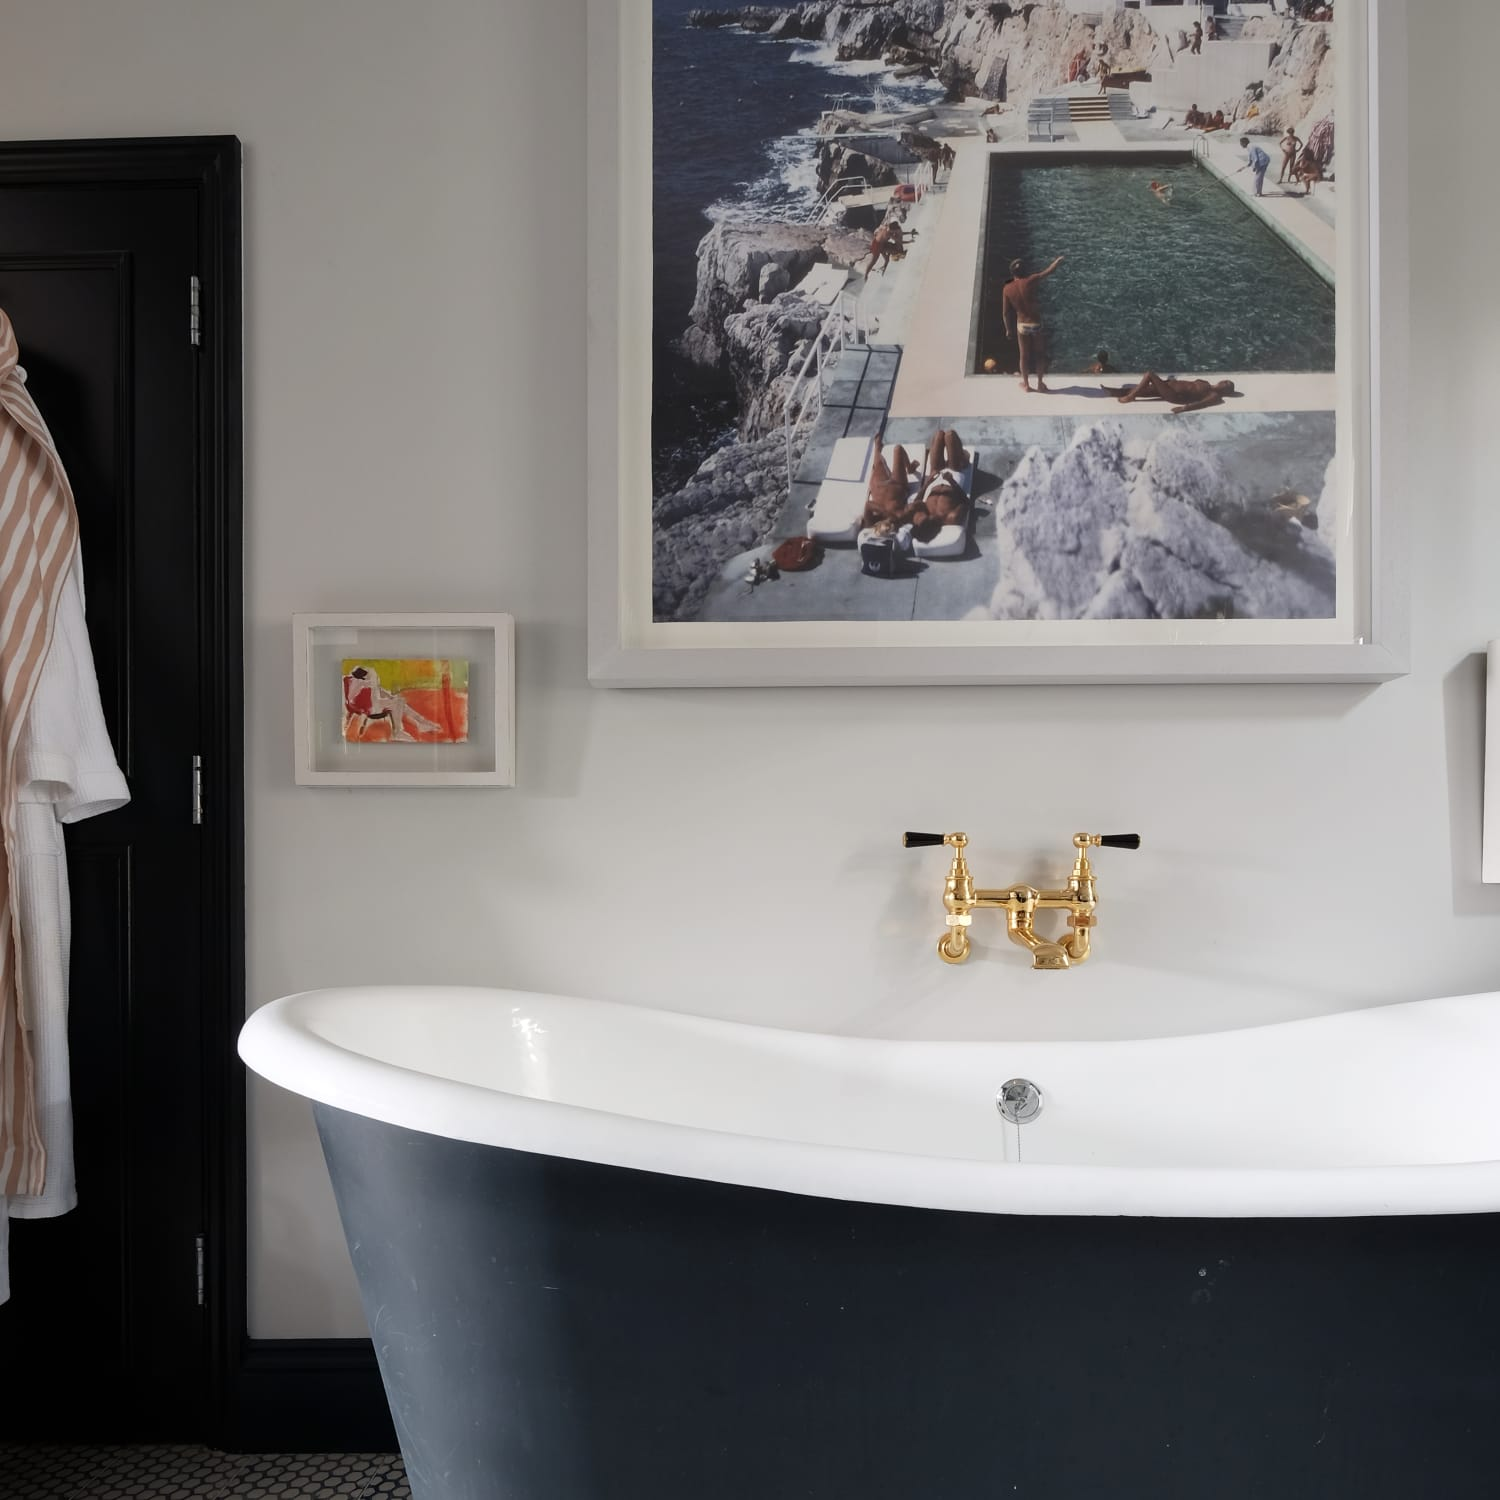 How To Clean An Old Porcelain Enamel Bathtub Or Sink Apartment Therapy